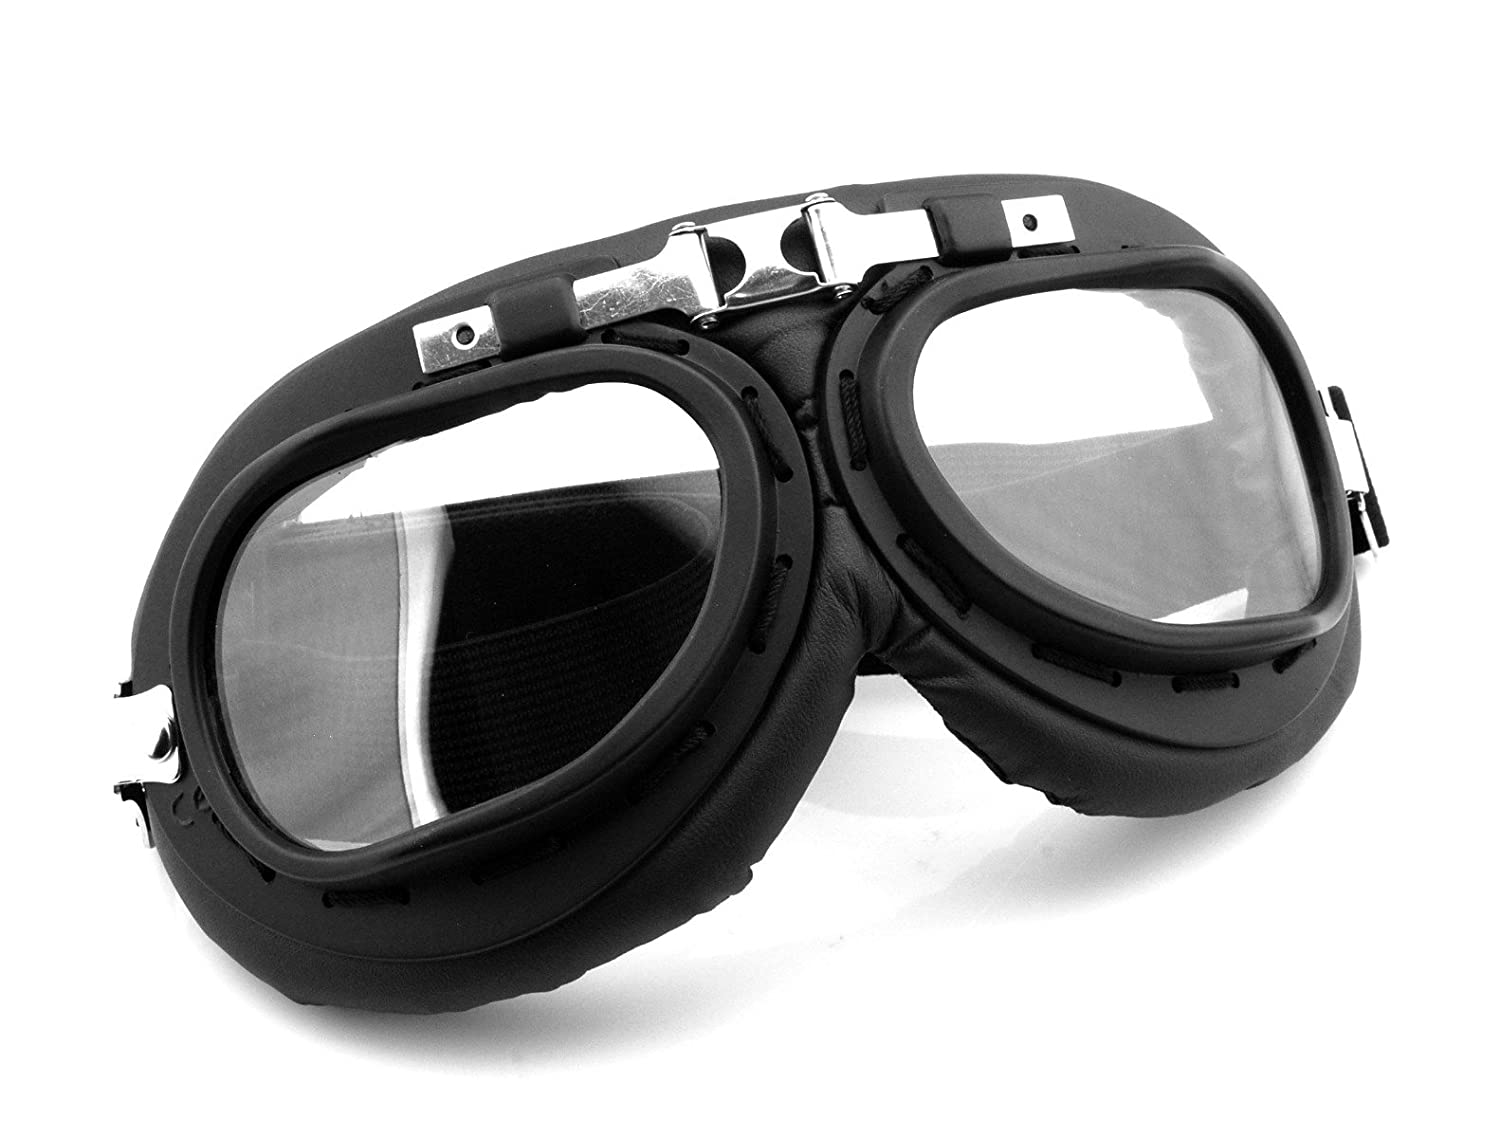 Vintage Motorcycle Racing Parts Clear Lens Riding Helmet Men UV Protection Goggles Glasses For 1983 Honda MVX250F(D) книги издательство аст программа возвращение